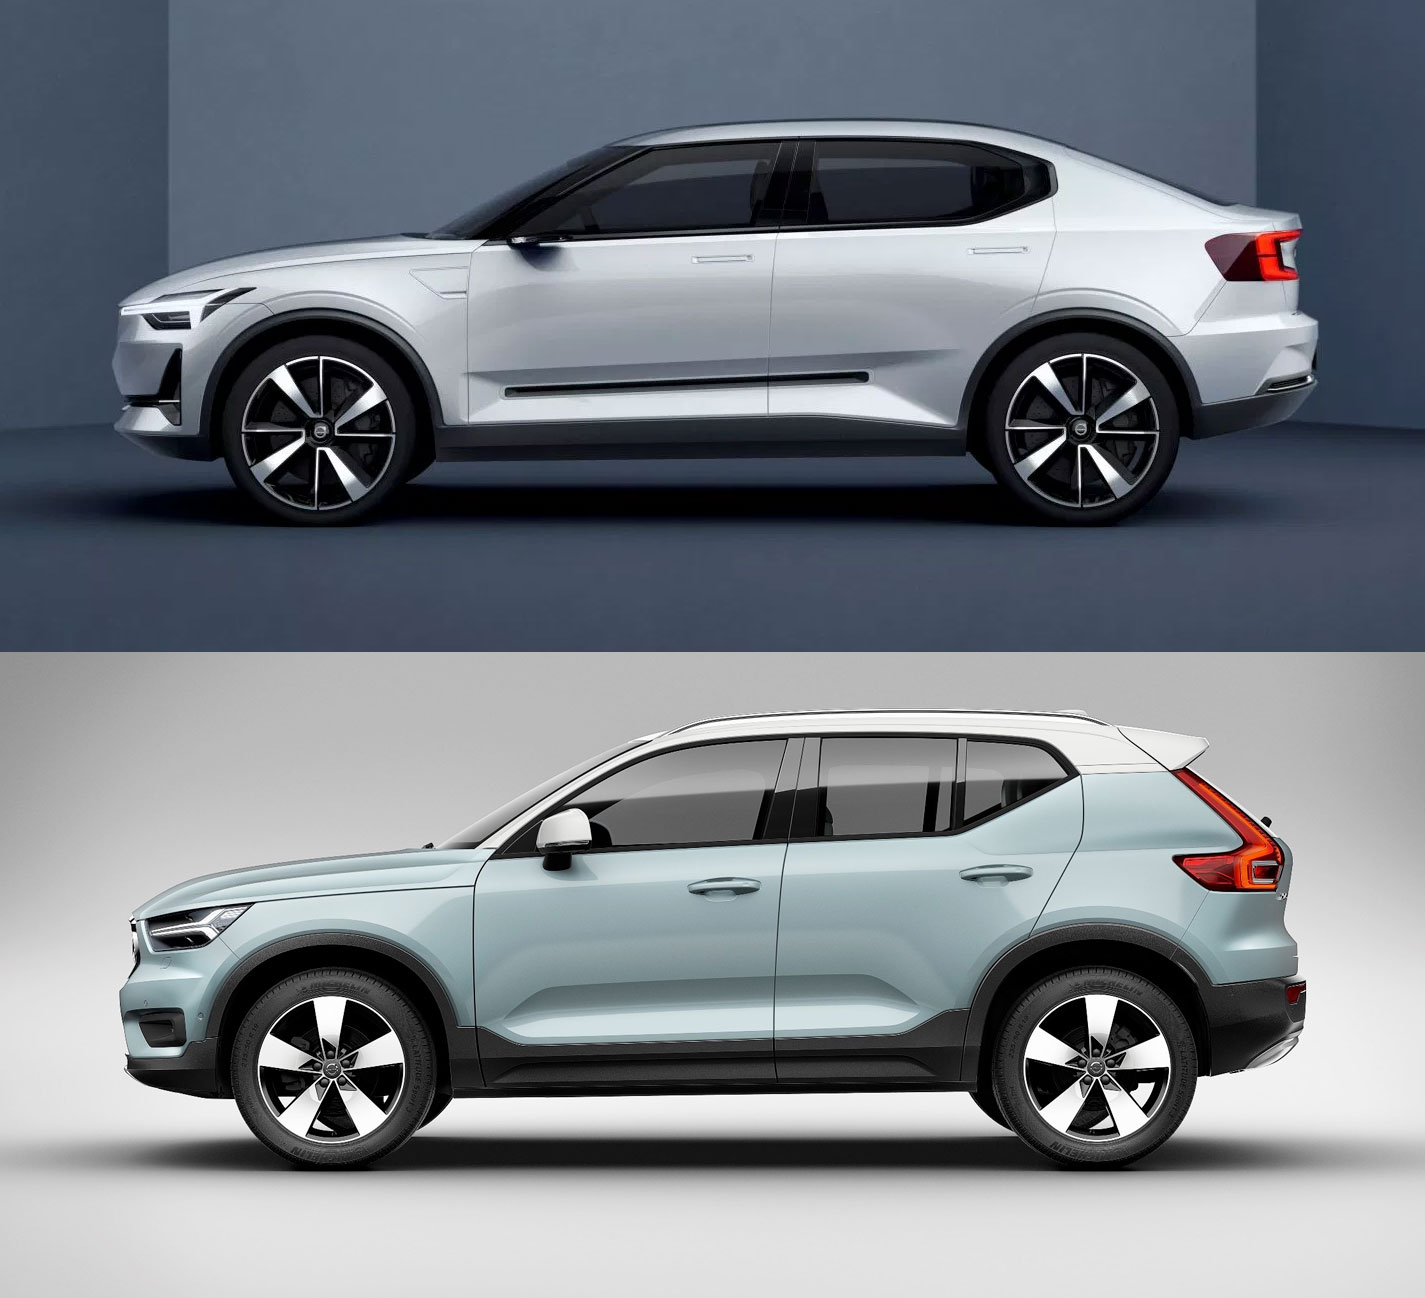 Fully Electric Volvo XC40 Crossover SUV Coming This Year